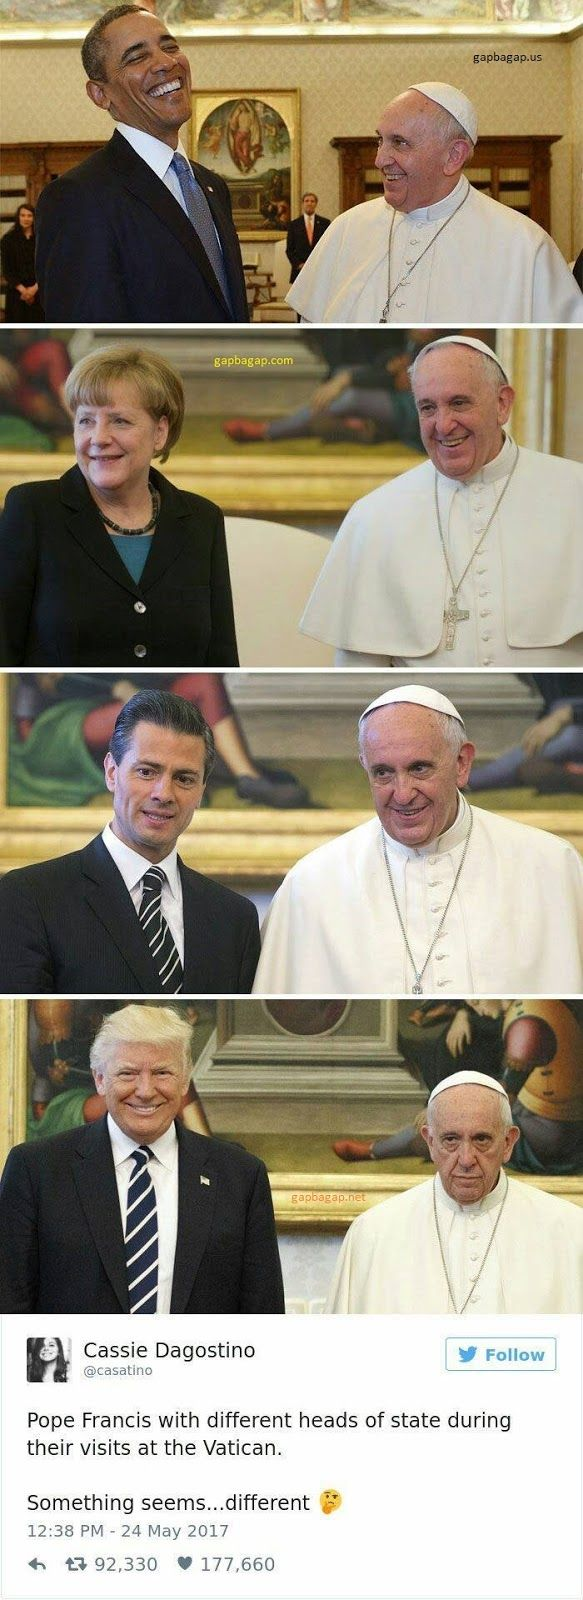 Gap Ba Gap: Top 5 Funny Pictures Of Pope vs. Head Of States